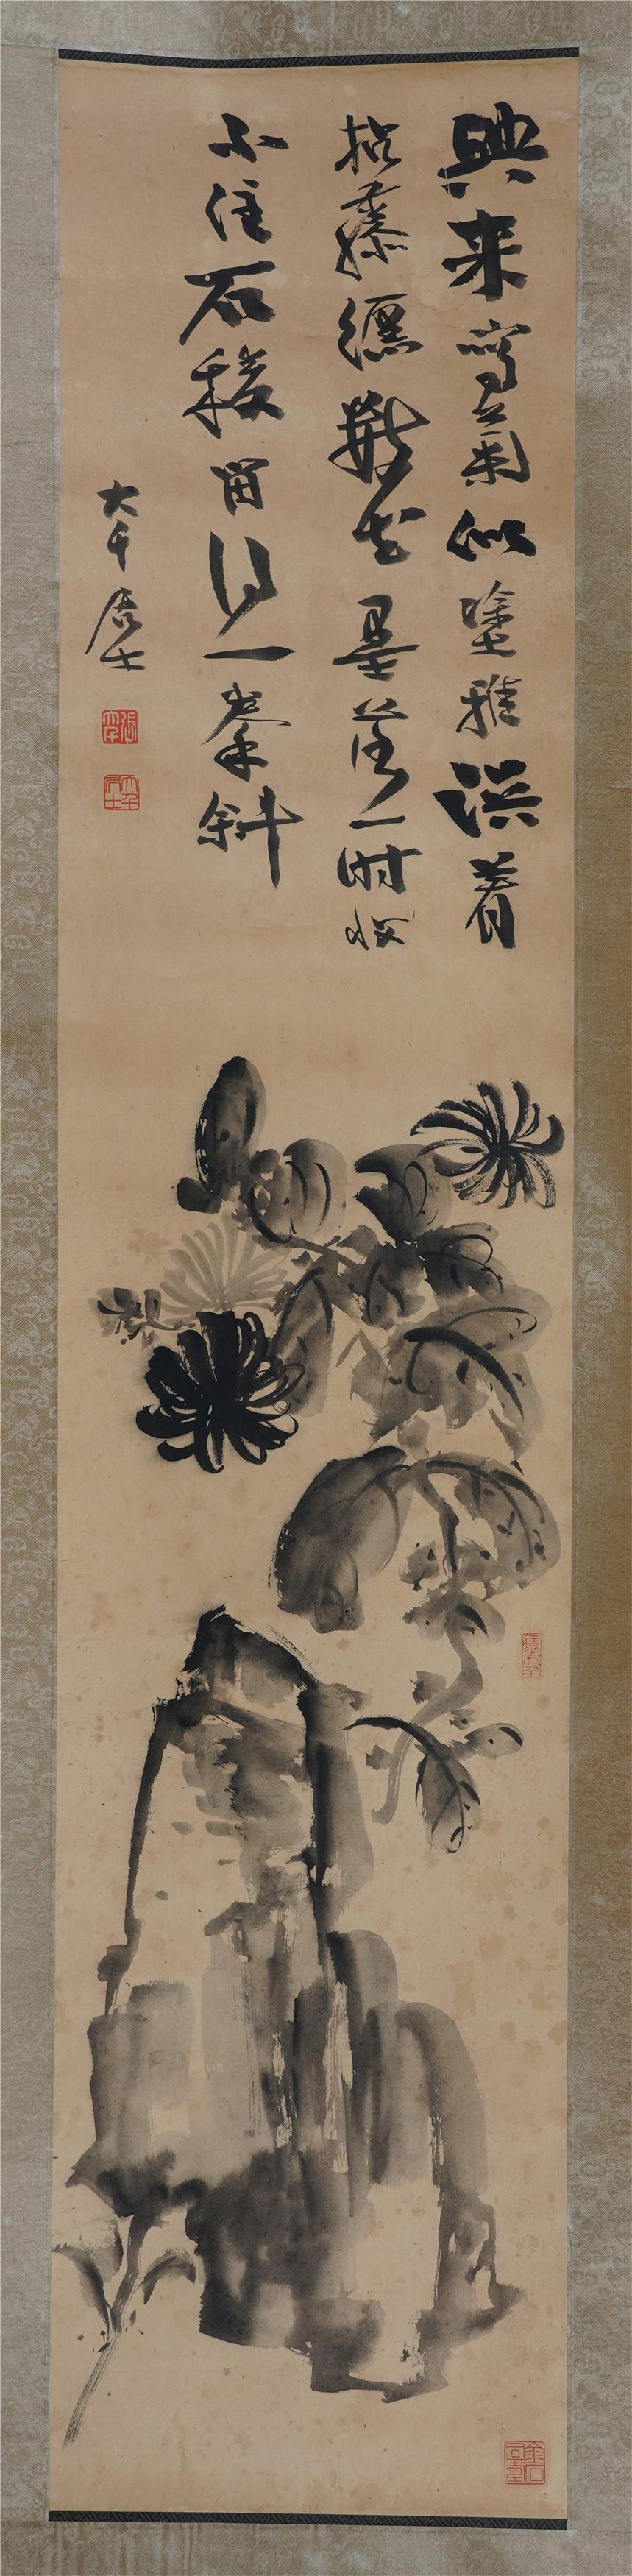 CHINESE HANGING SCROLL INK PAINTING OF ZHANG DAQIAN